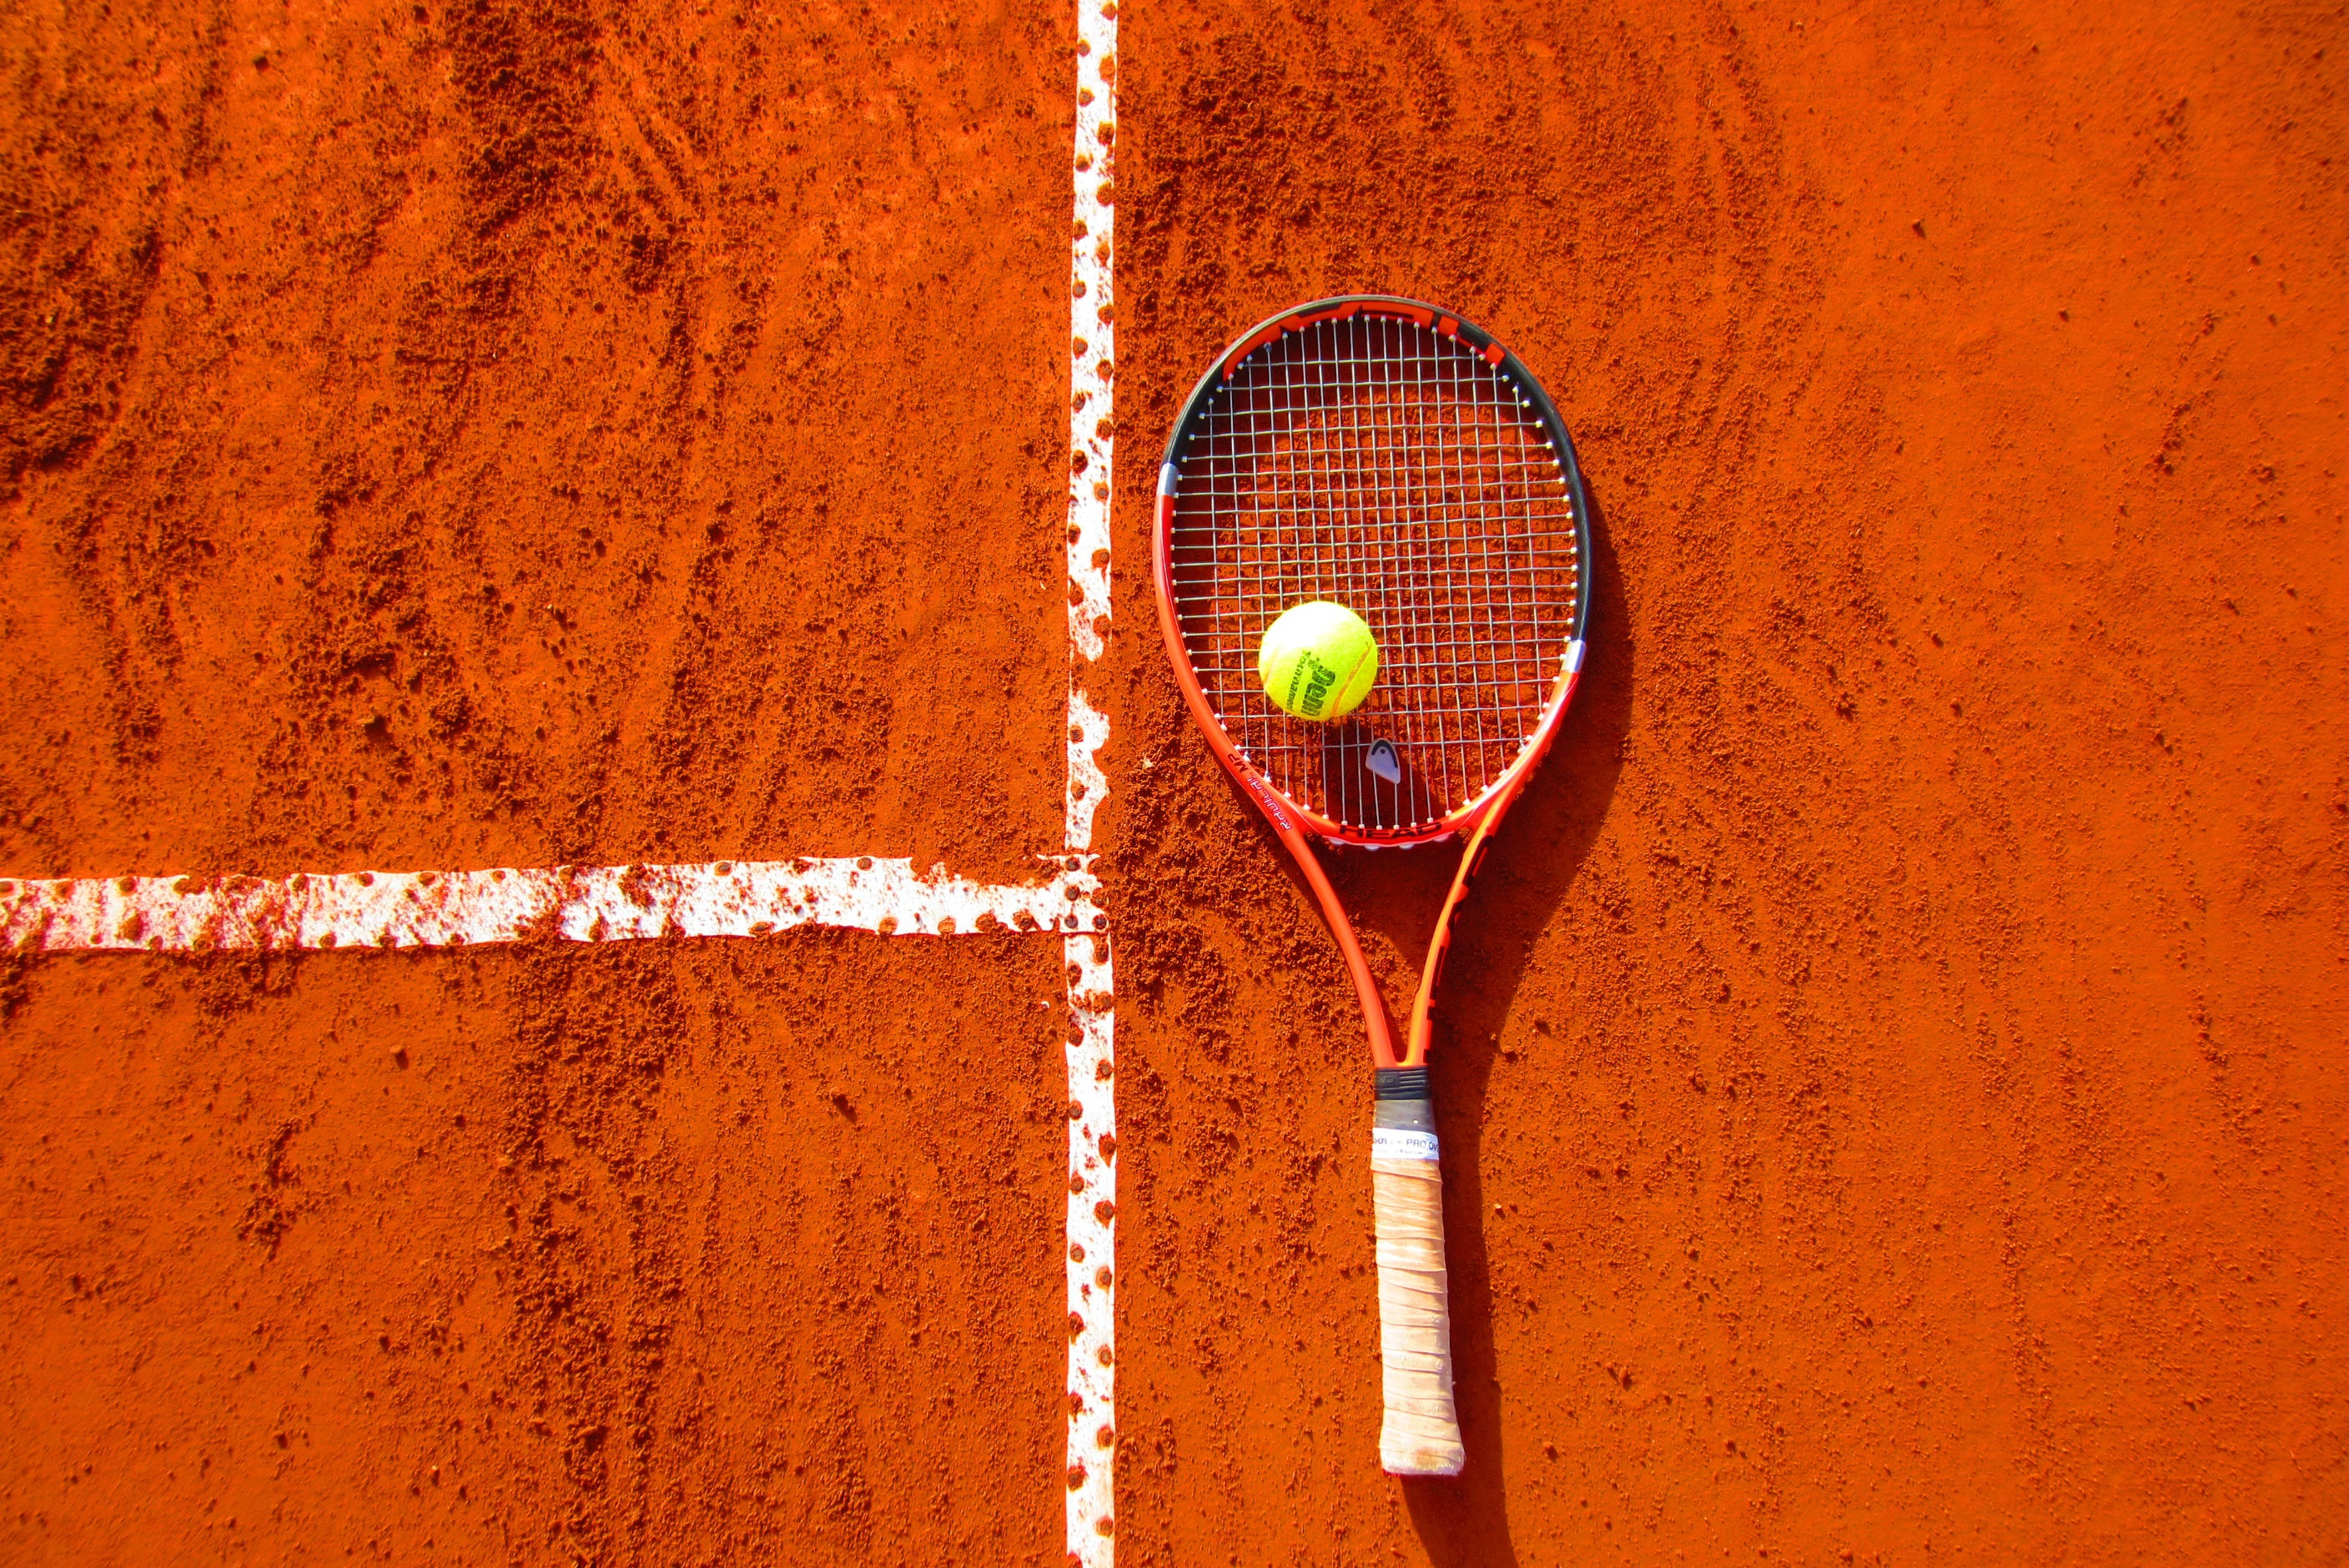 free stock photos of tennis pexels